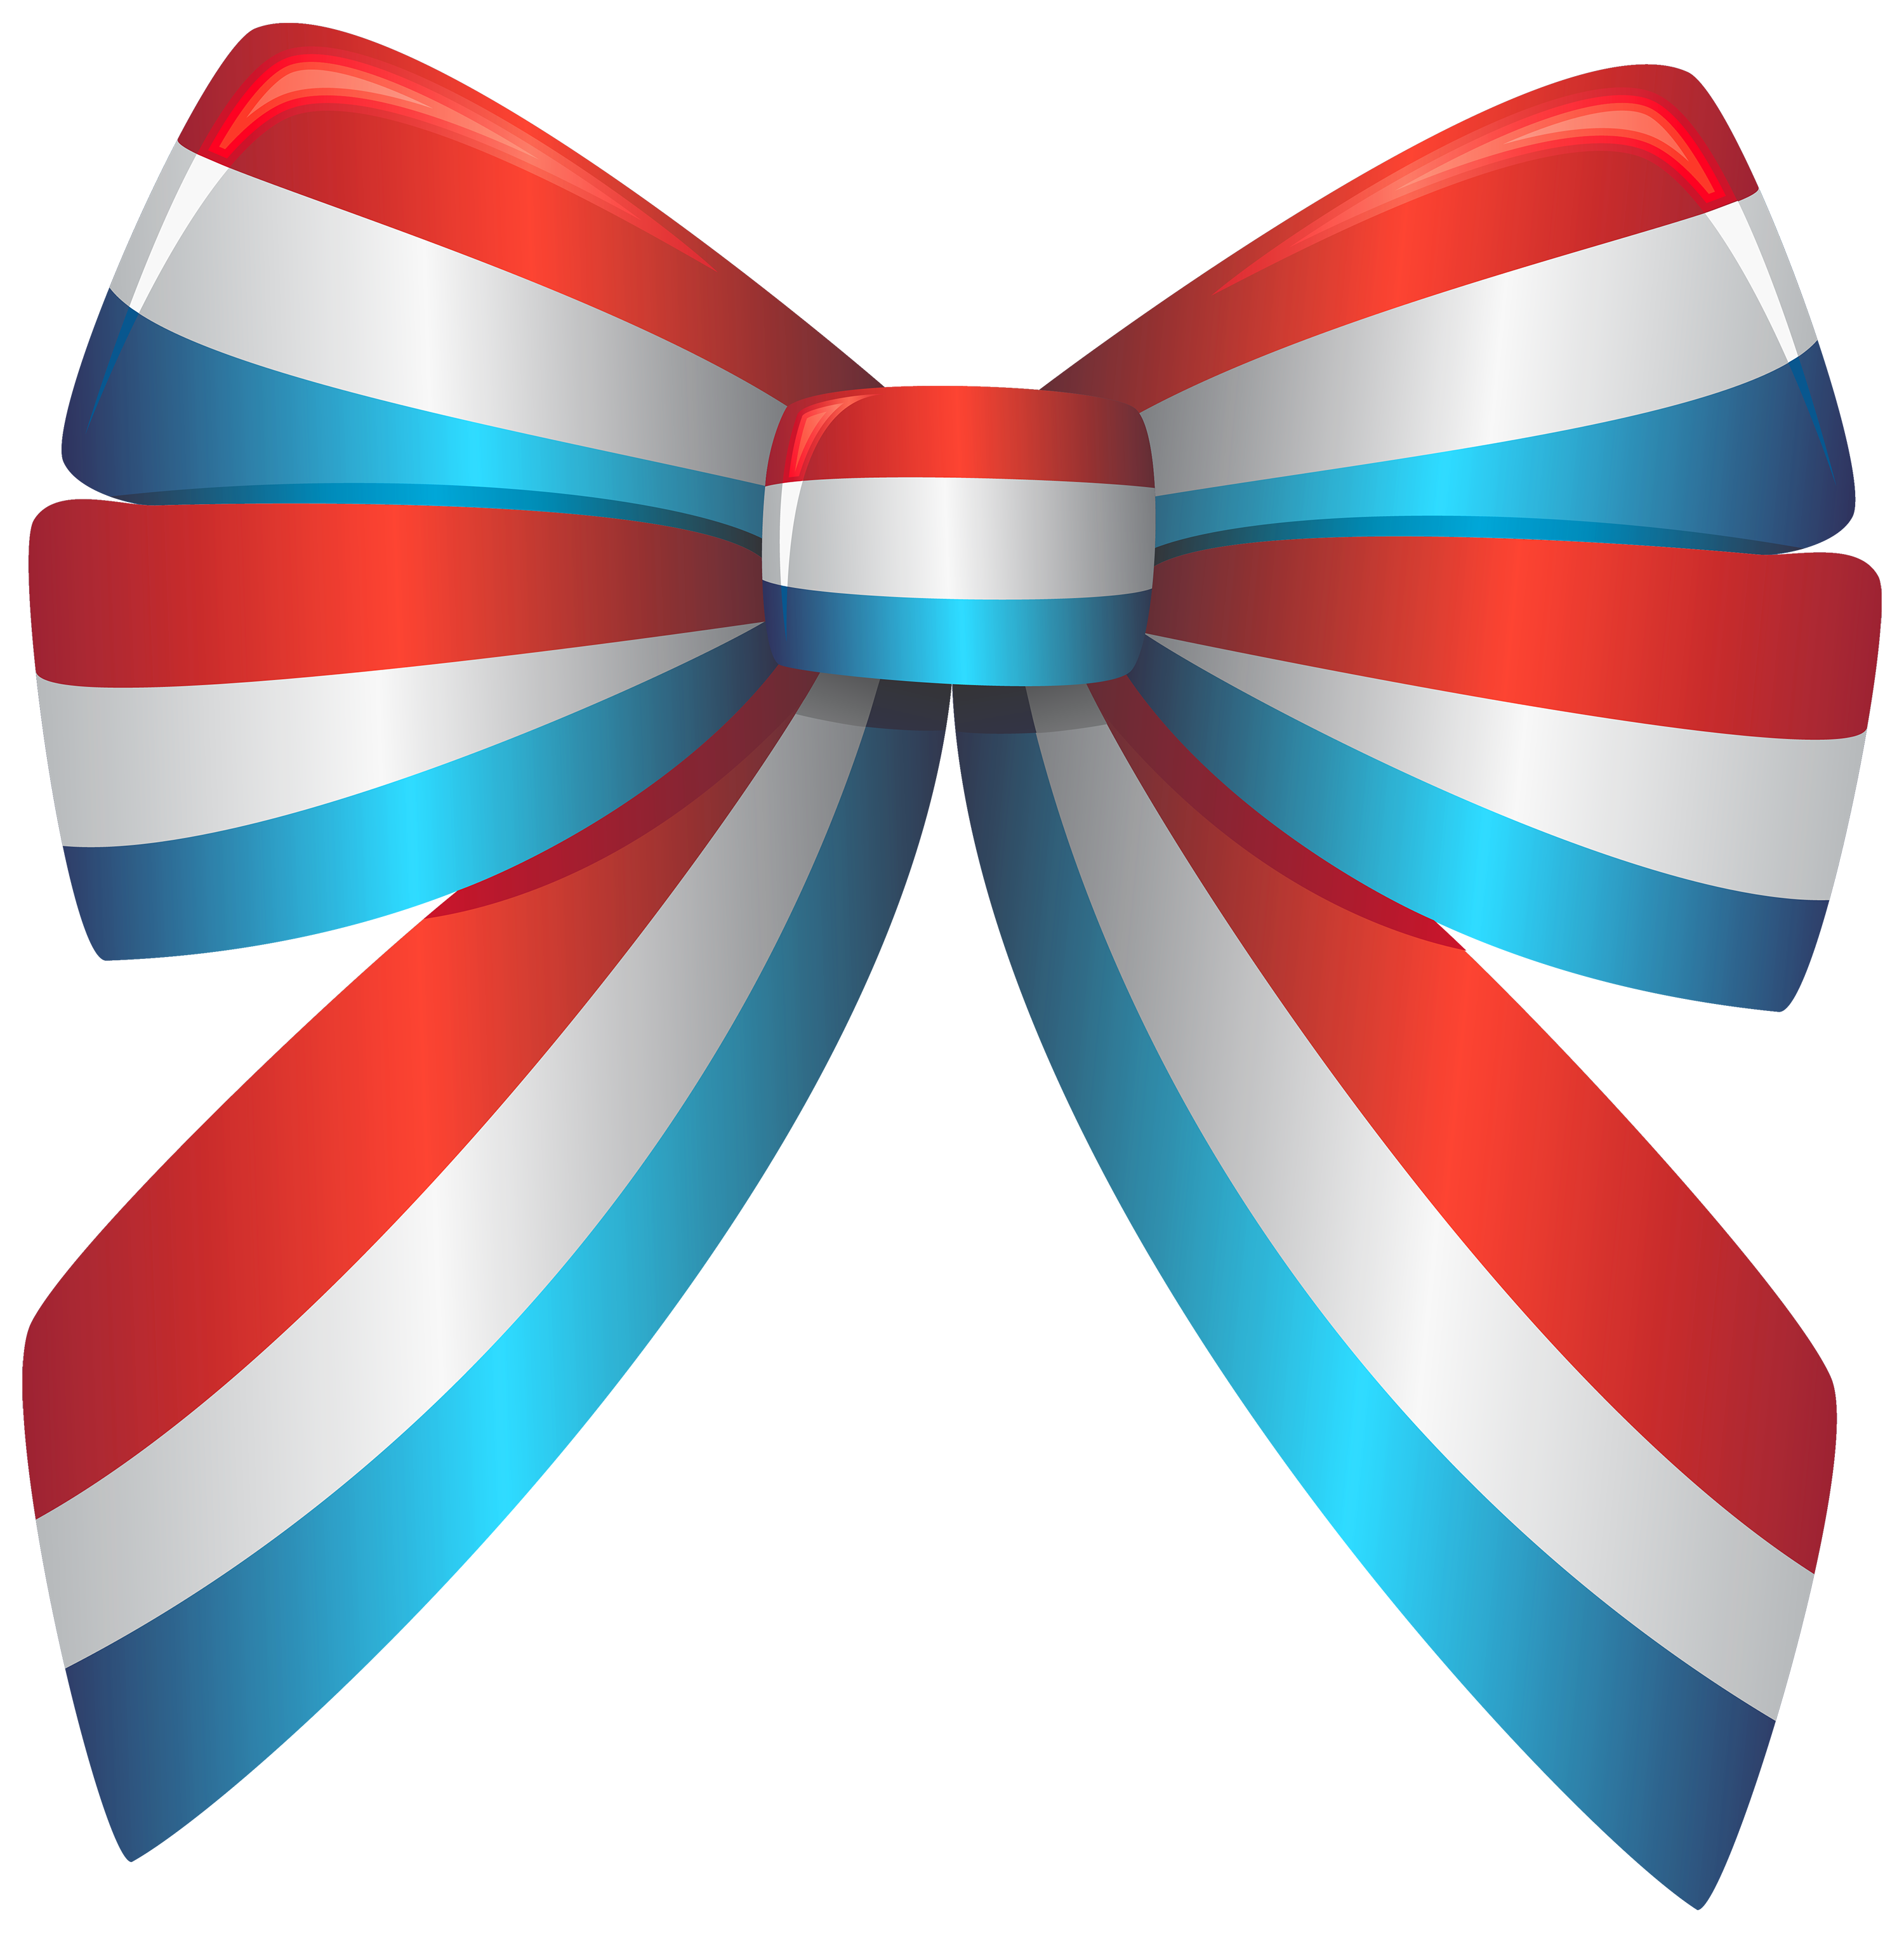 Ribbon clipart png png freeuse library Red White and Blue Ribbon PNG Clipart - Best WEB Clipart png freeuse library